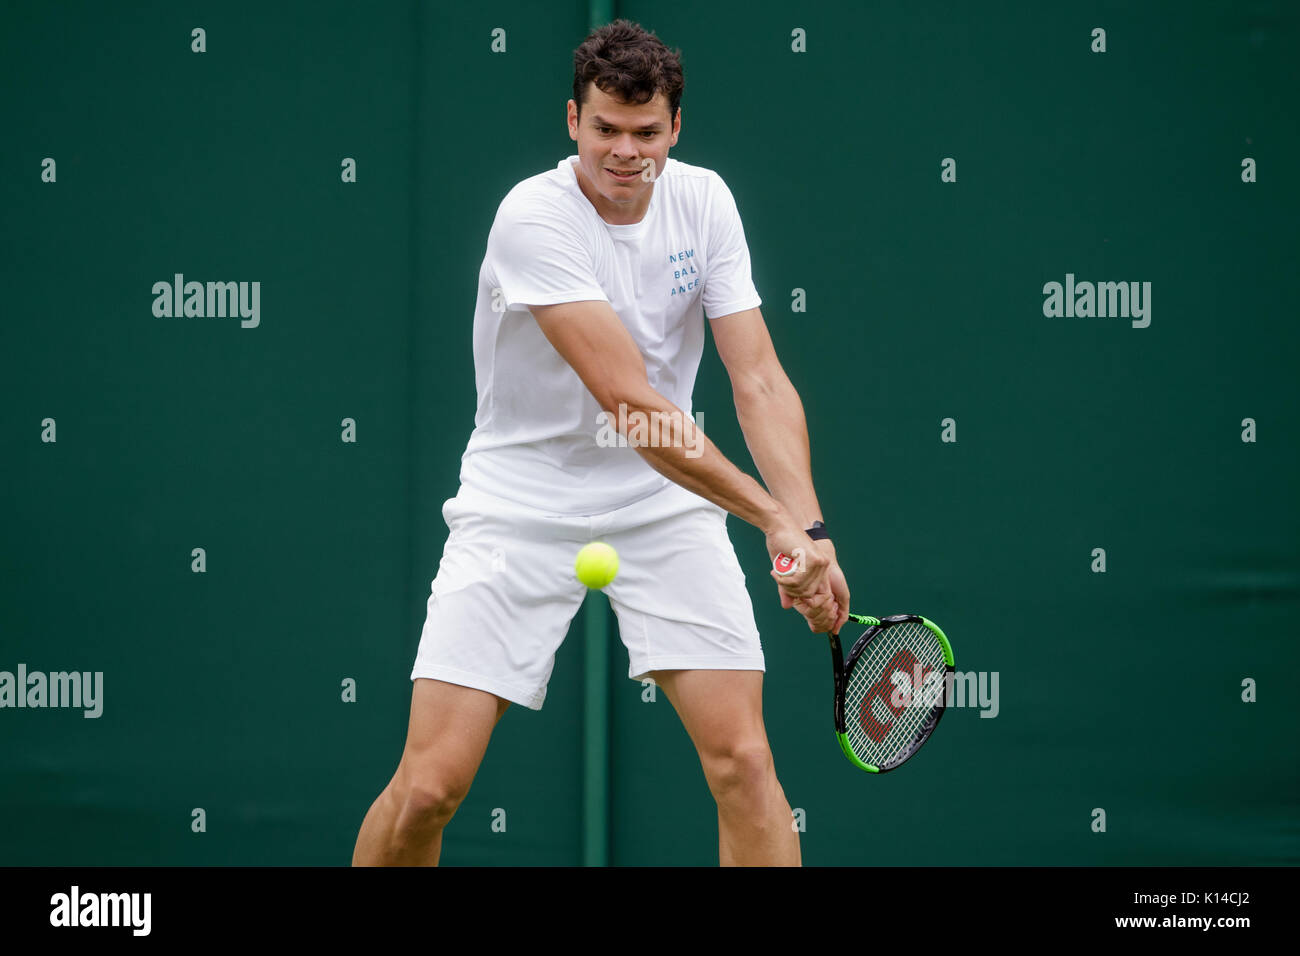 Milos Raonic of Canada during practice at the Wimbledon Championships 2017 - Stock Image